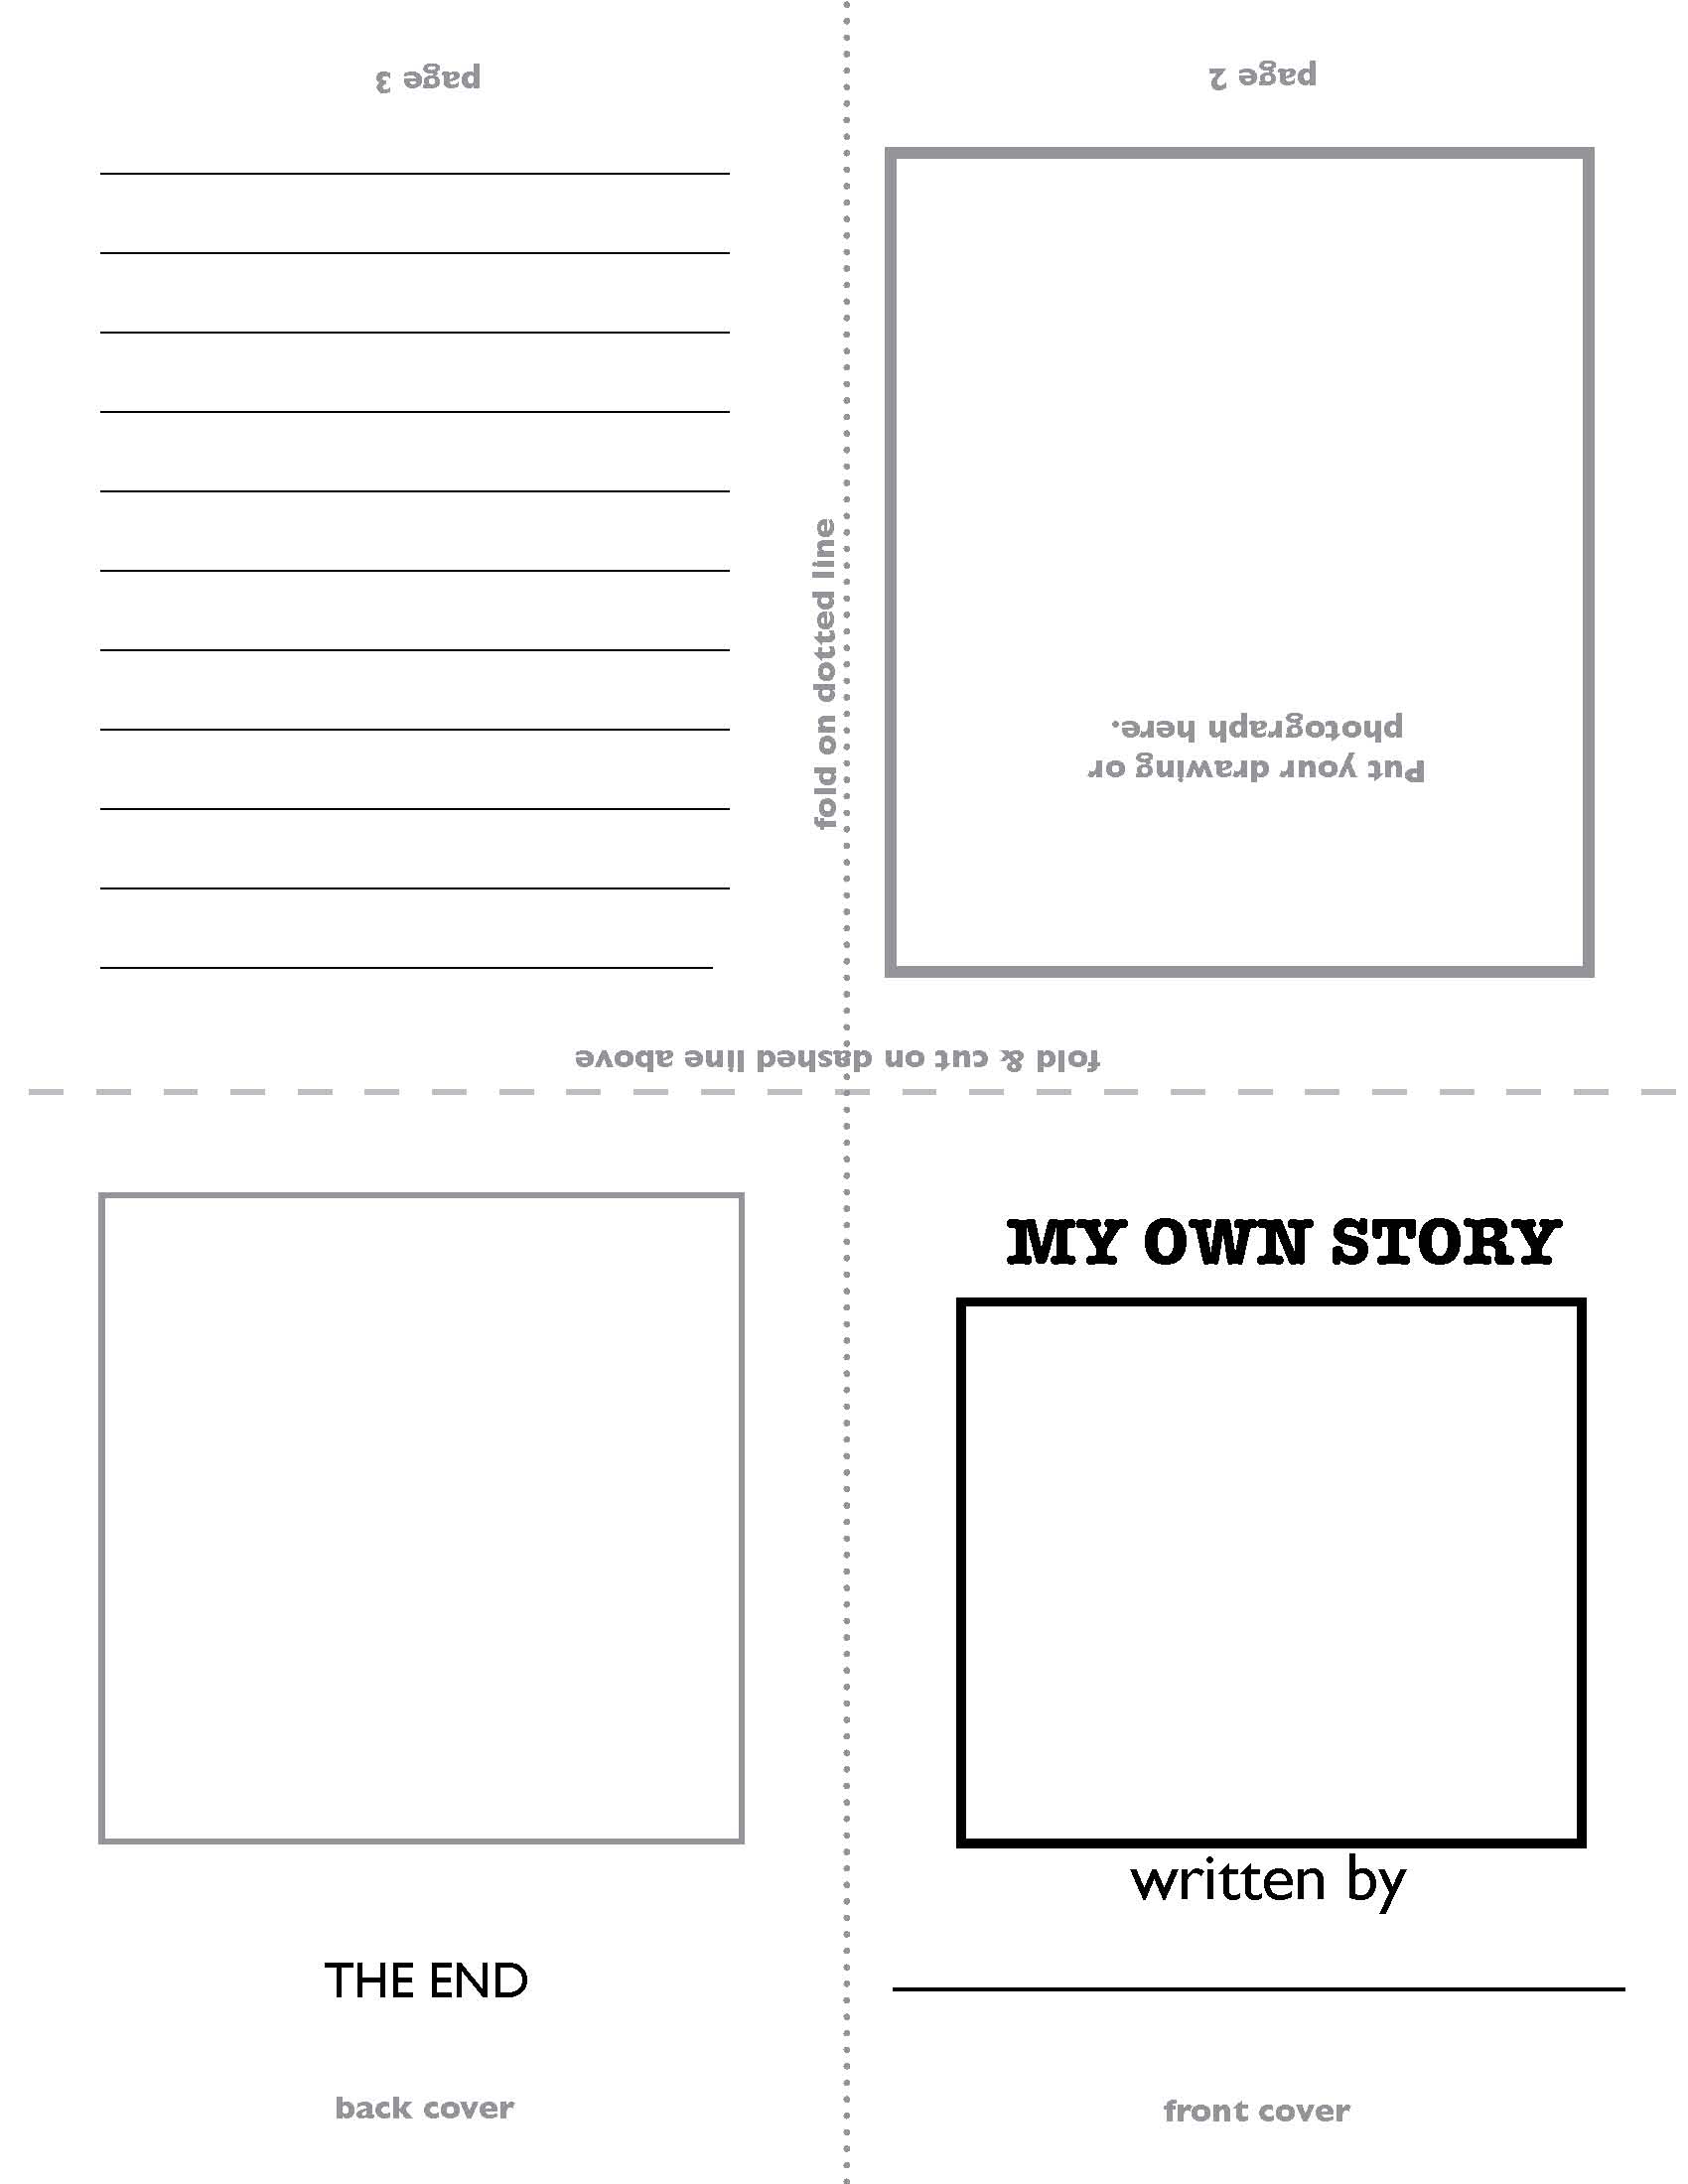 Personal biography template for kids my own story template side one